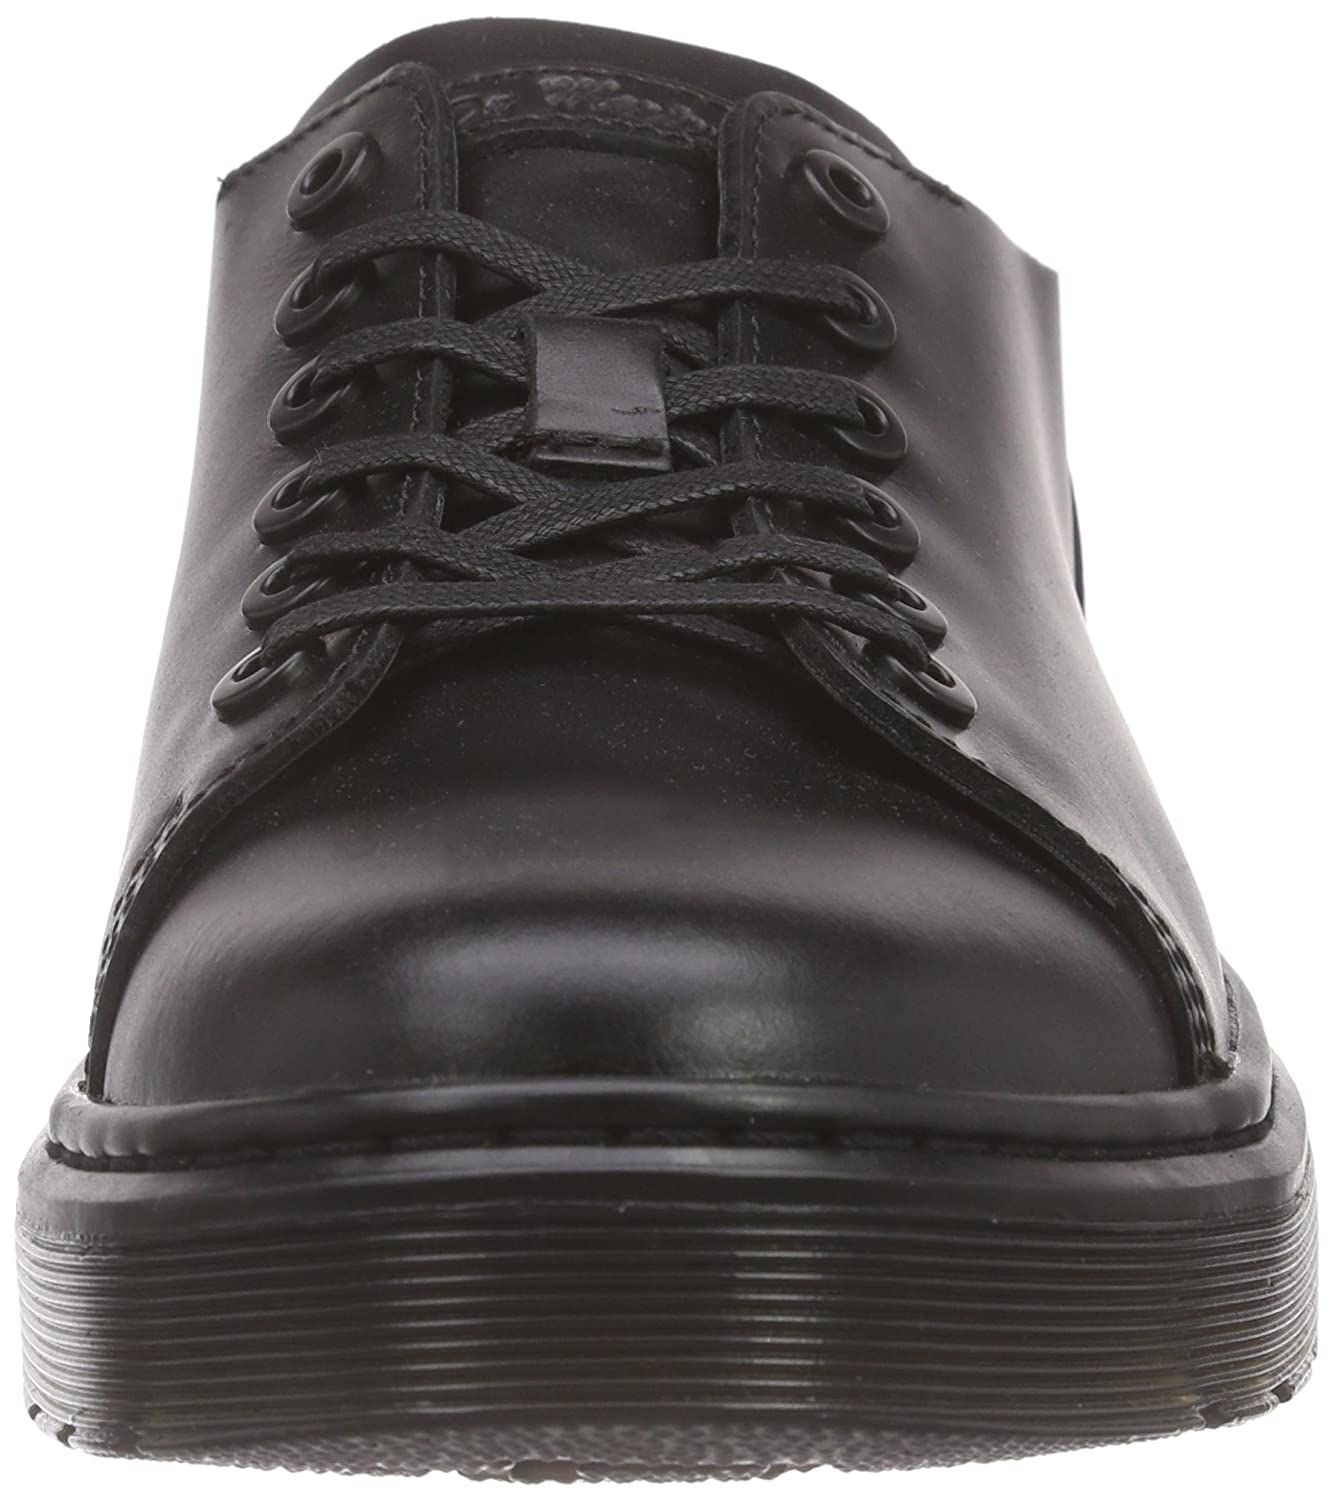 Dr. Martens Men's Dante Dante Men's Brando Oxford 13 UK/14 M US|Black B00SB8KLB6 5af1db